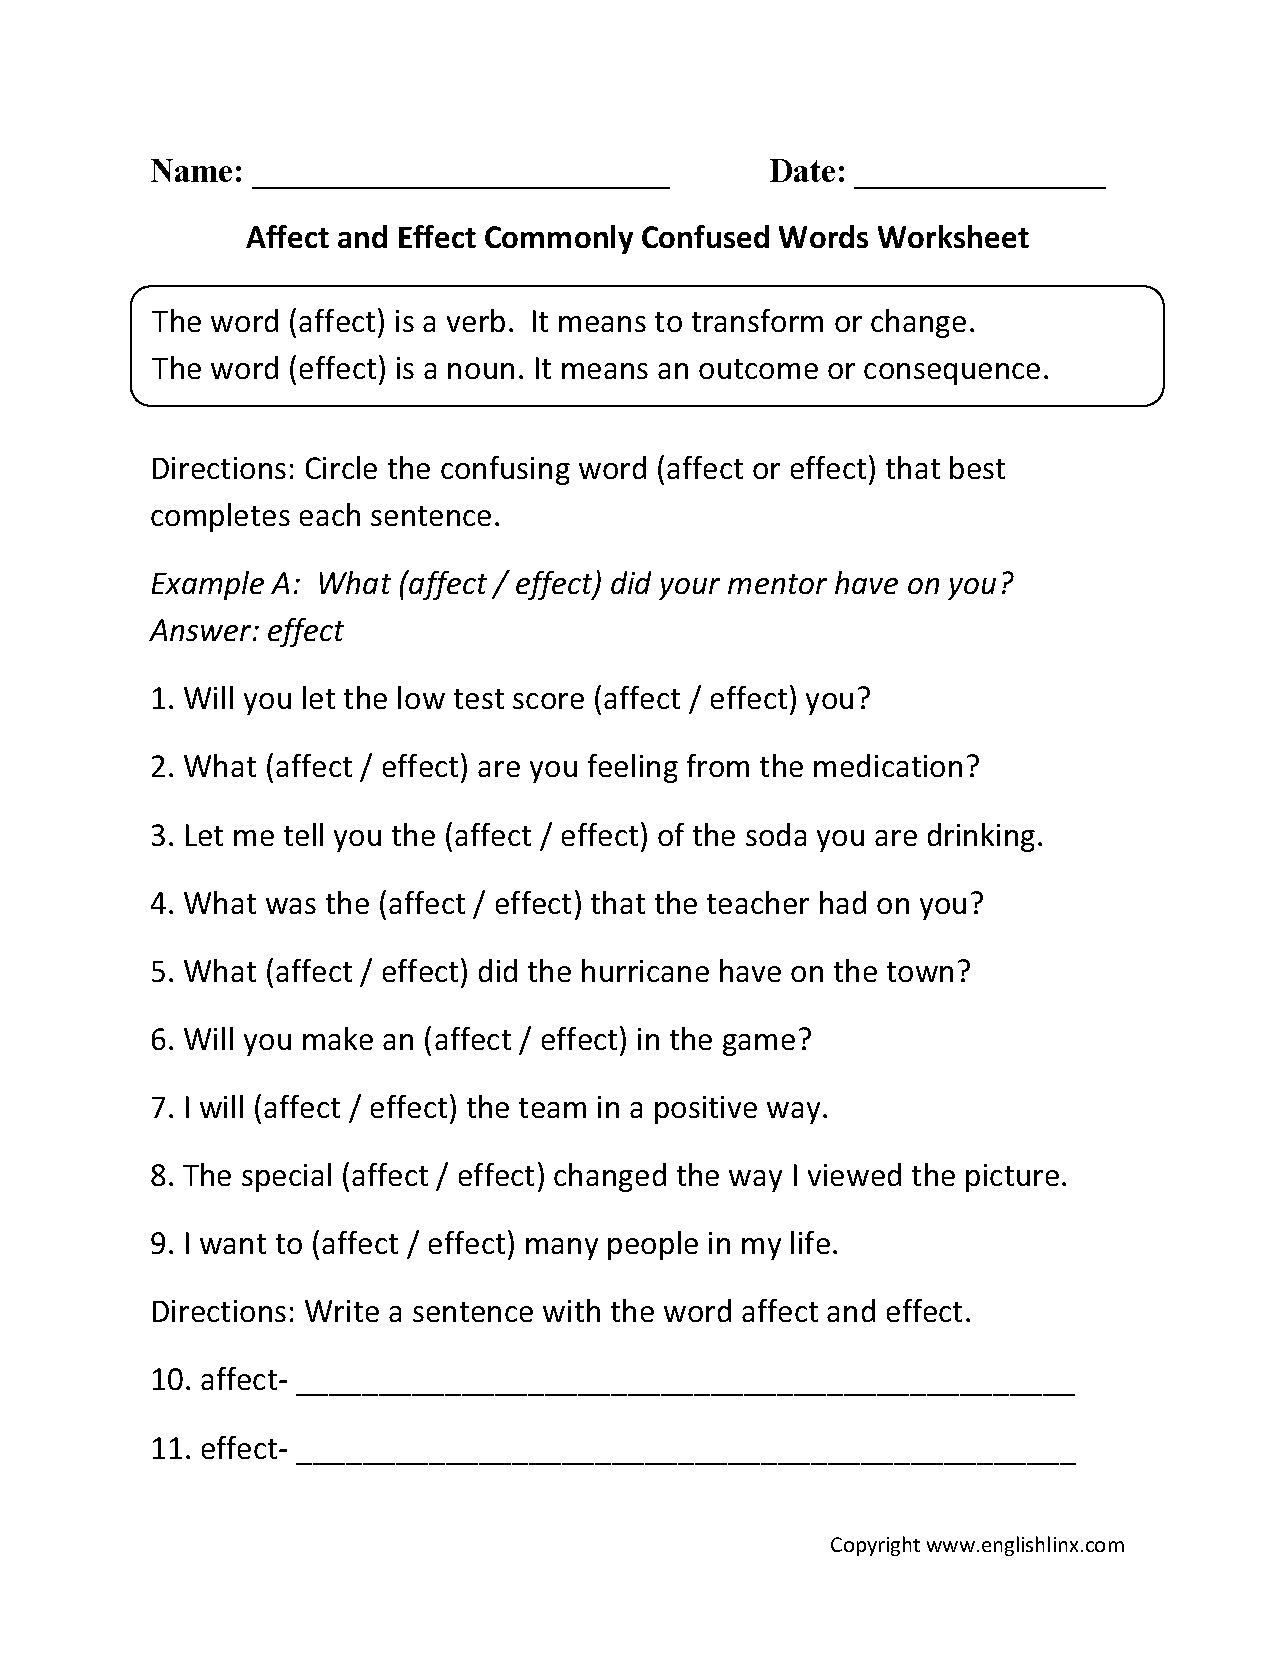 Affect And Effect Commonly Confused Words Worksheets Education